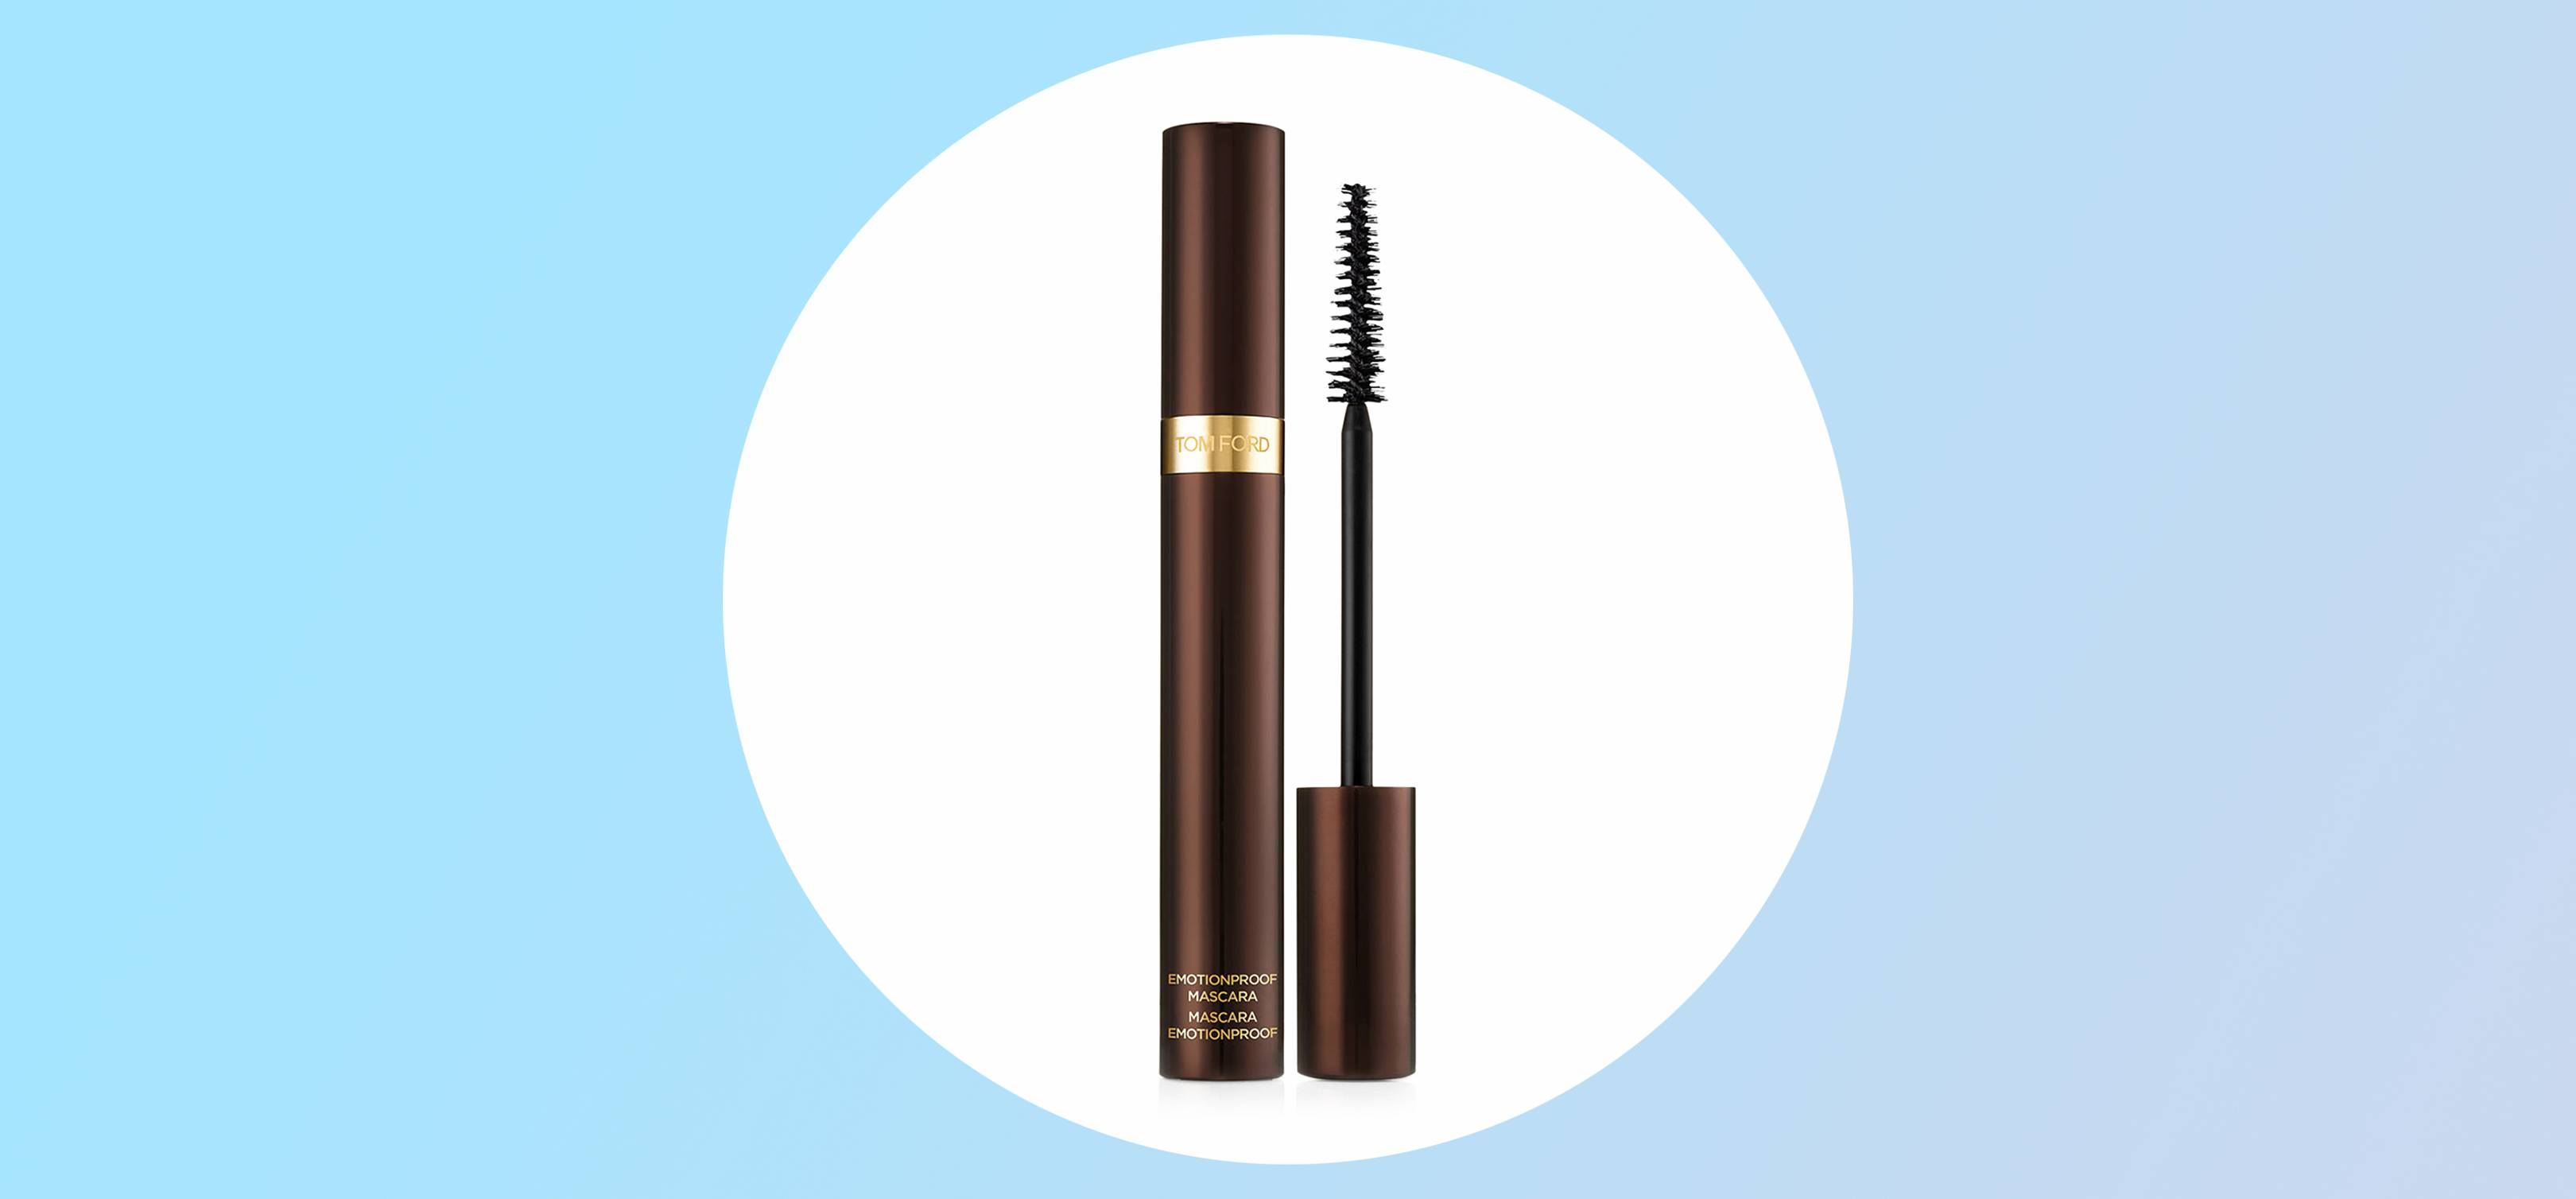 00c318613f1 Best Waterproof Mascara: Eye Makeup That Doesn't Smudge | Glamour UK